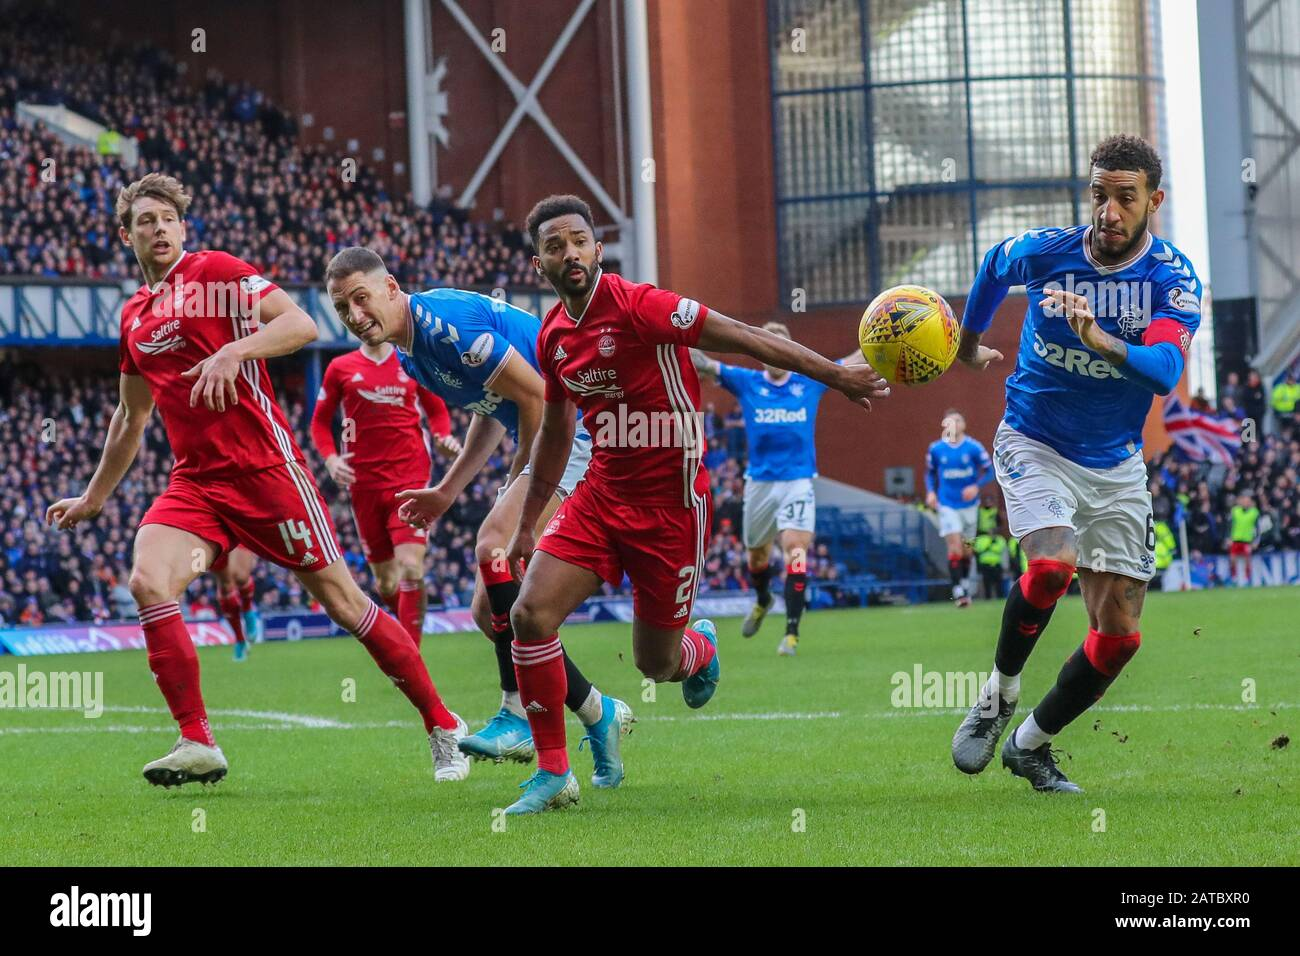 Glasgow, UK. 01st Feb, 2020. Rangers FC played Aberdeen at the Glasgow teams home ground at Ibrox football stadium in a Scottish Premiere League match. The last two games between these teams resulted in a 5 - 0 win for Rangers at Ibrox and a 2 - 2 draw at Pittodrie, Aberdeen's home ground, so in league points this is an important game for both teams. The game finished 0 - 0. Credit: Findlay/Alamy Live News Stock Photo